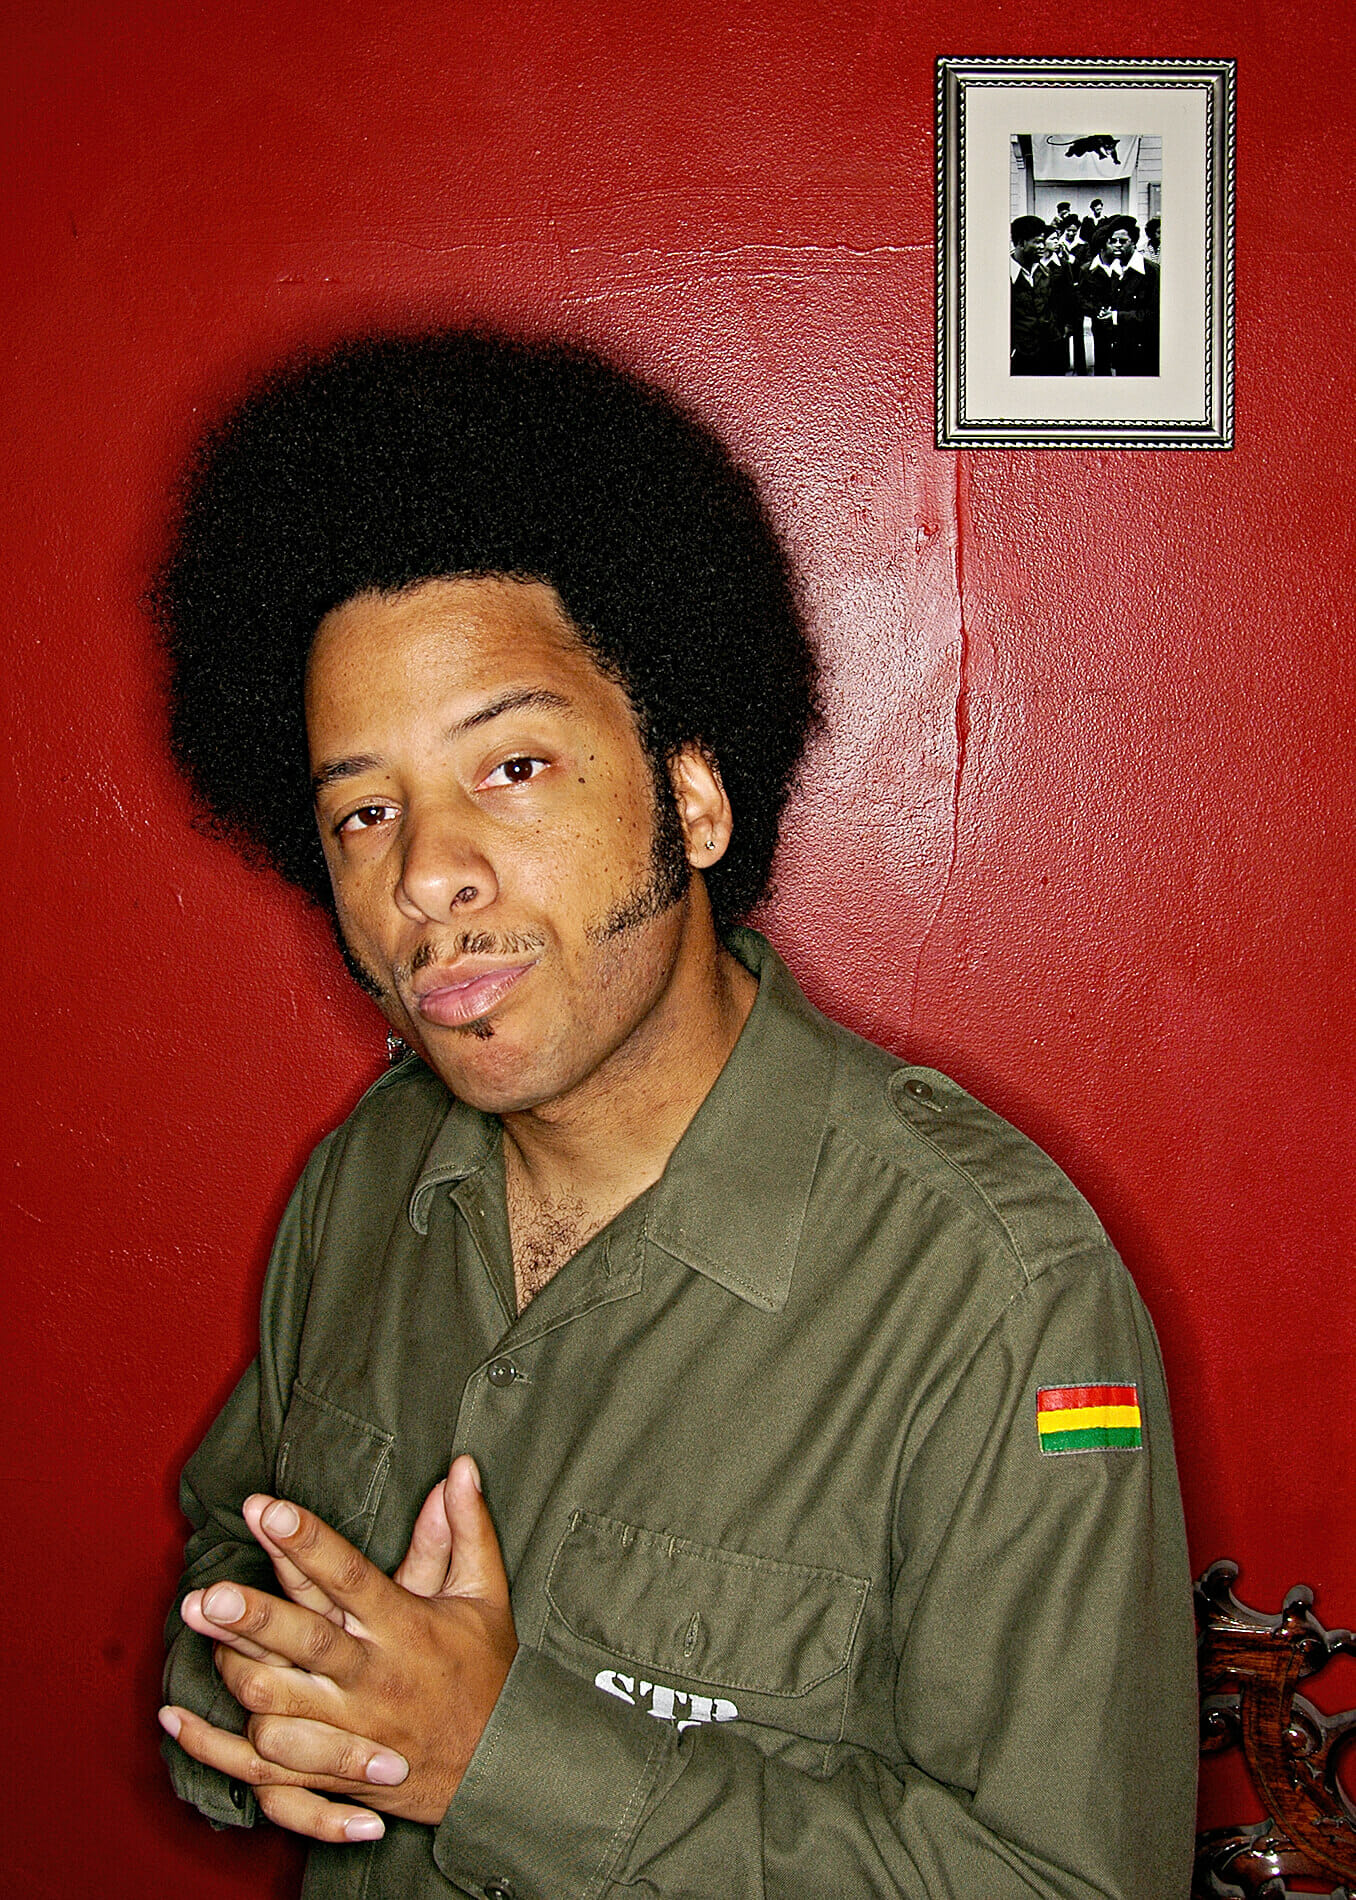 Boots Riley with Black Panthers photo